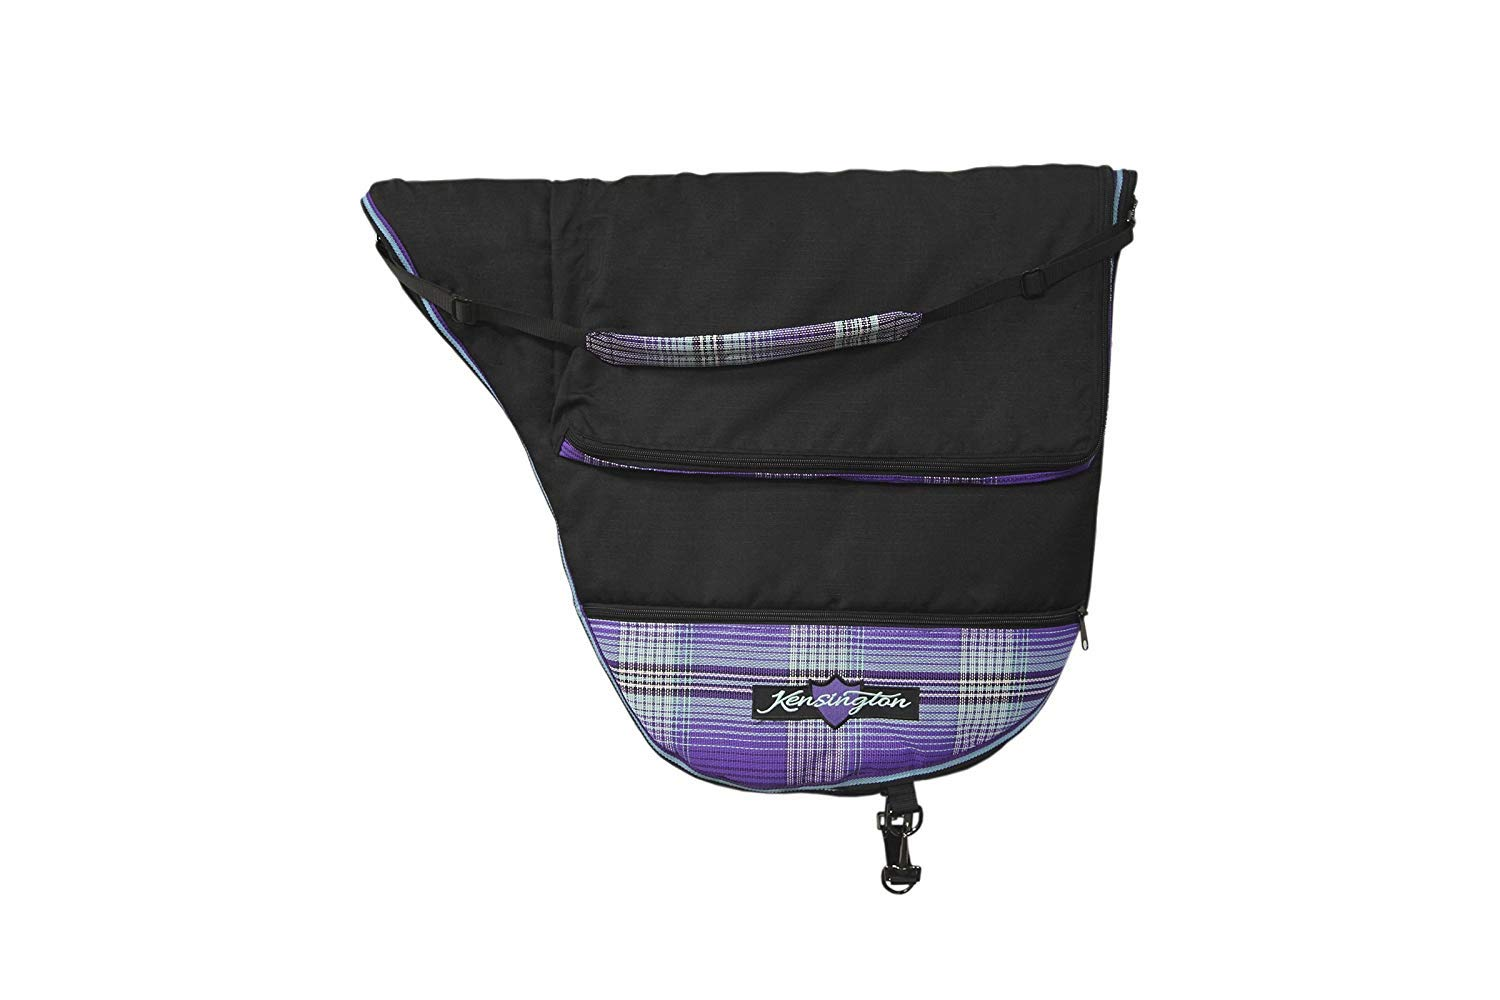 Kensington Dressage Saddle Carry Bag - Padded for Additional Protection - Features Top Compartment and Lower Storage Pockets - Padded Shoulder Pad for Carrying Comfort by Kensington Protective Products